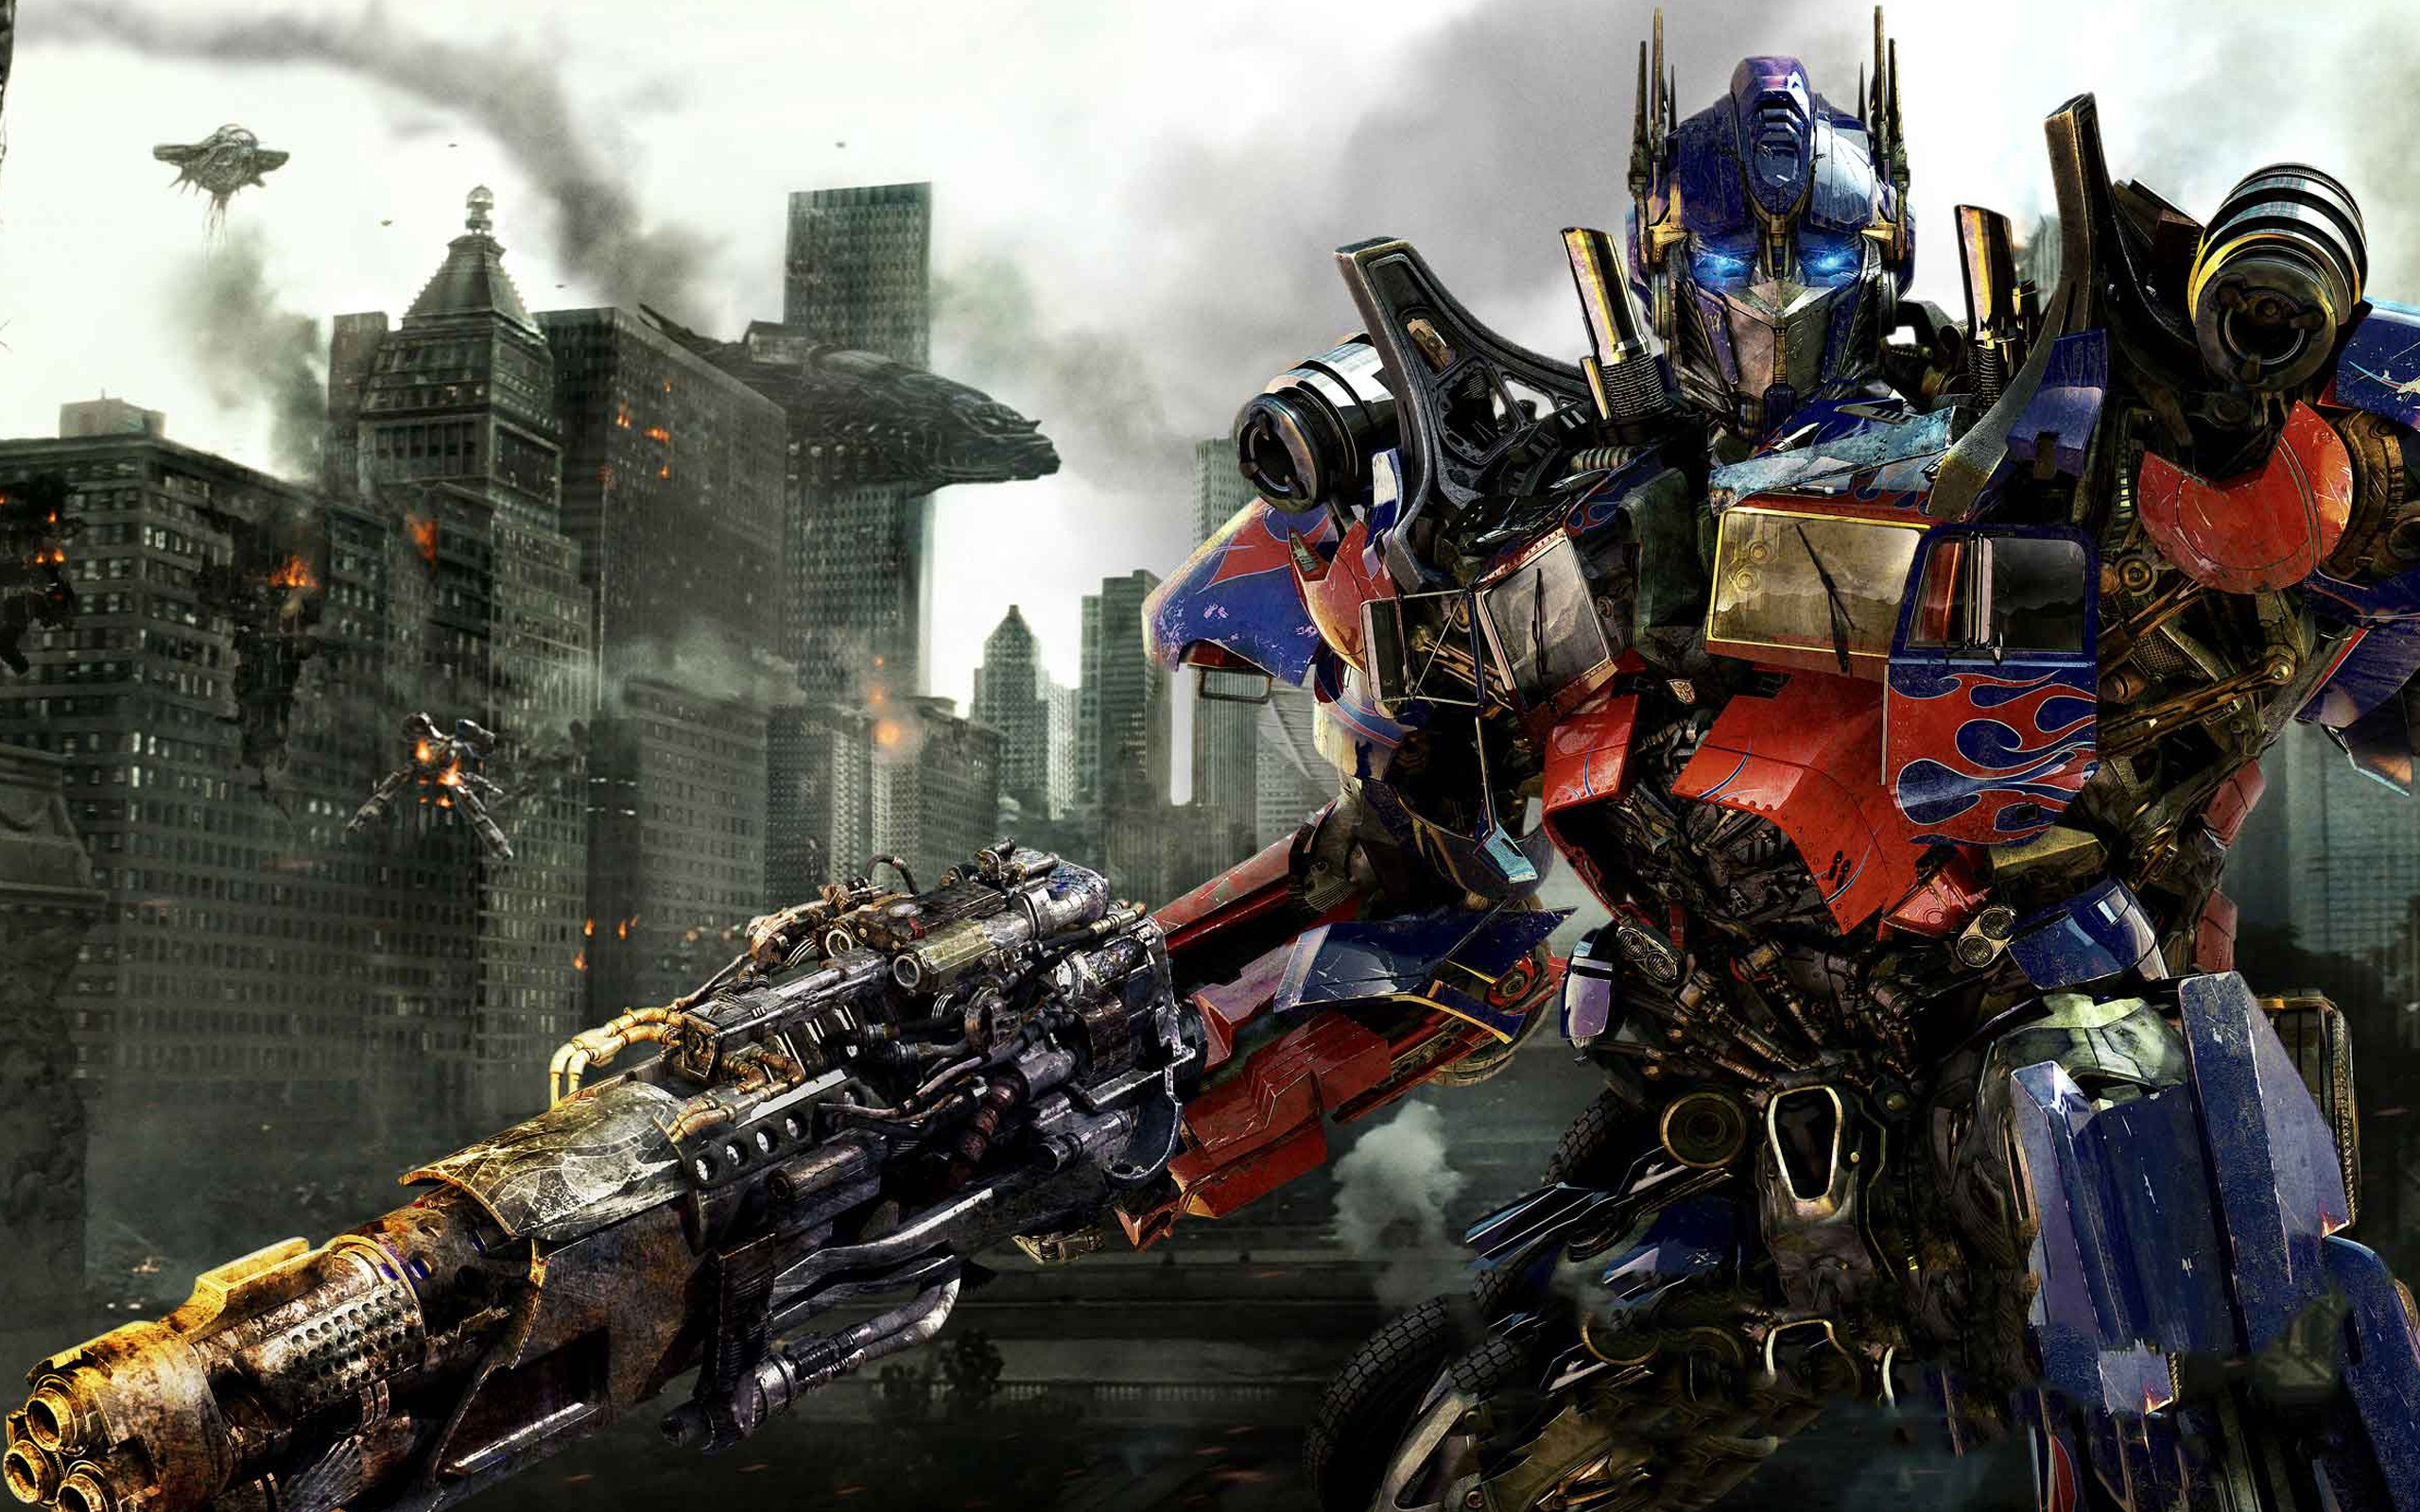 Transformers 3 Optimus Prime 2090.8 Kb